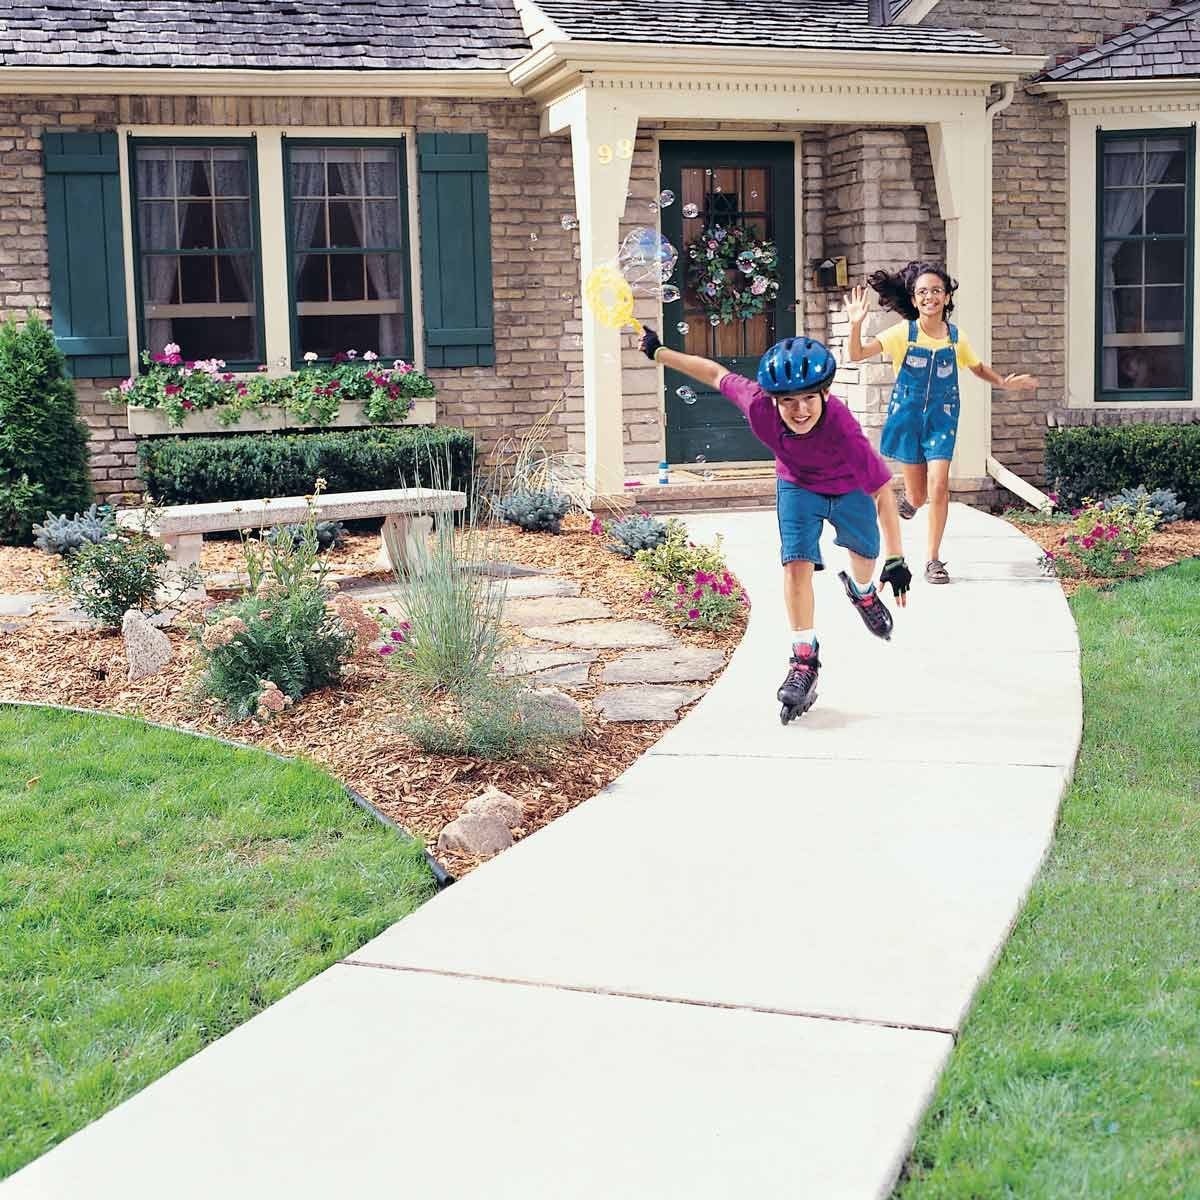 Concrete Sidewalk Kids Roller Blading Playing Outside Walkway Cost Of